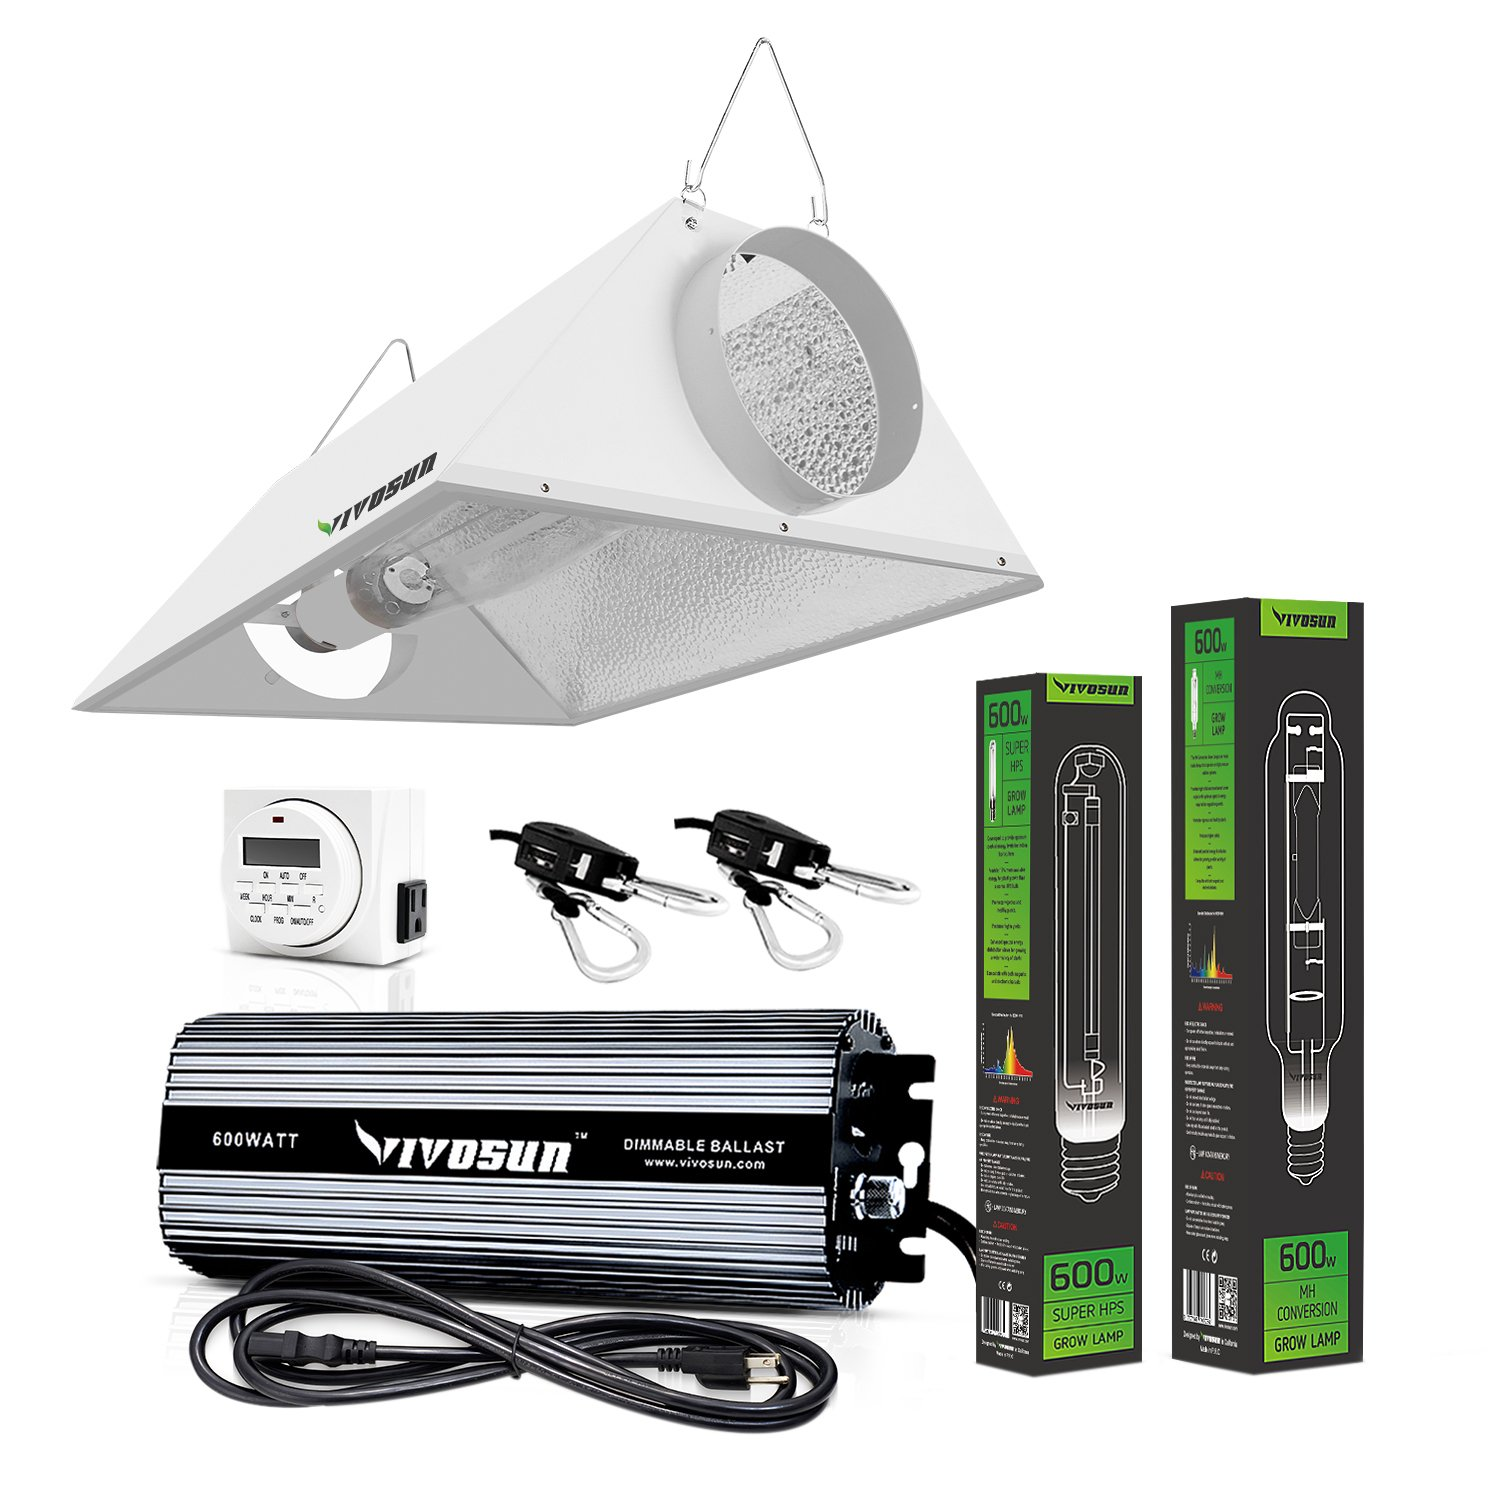 It comes with a complete package 600W grow light bulb, digital timer, digital ballast and reflector